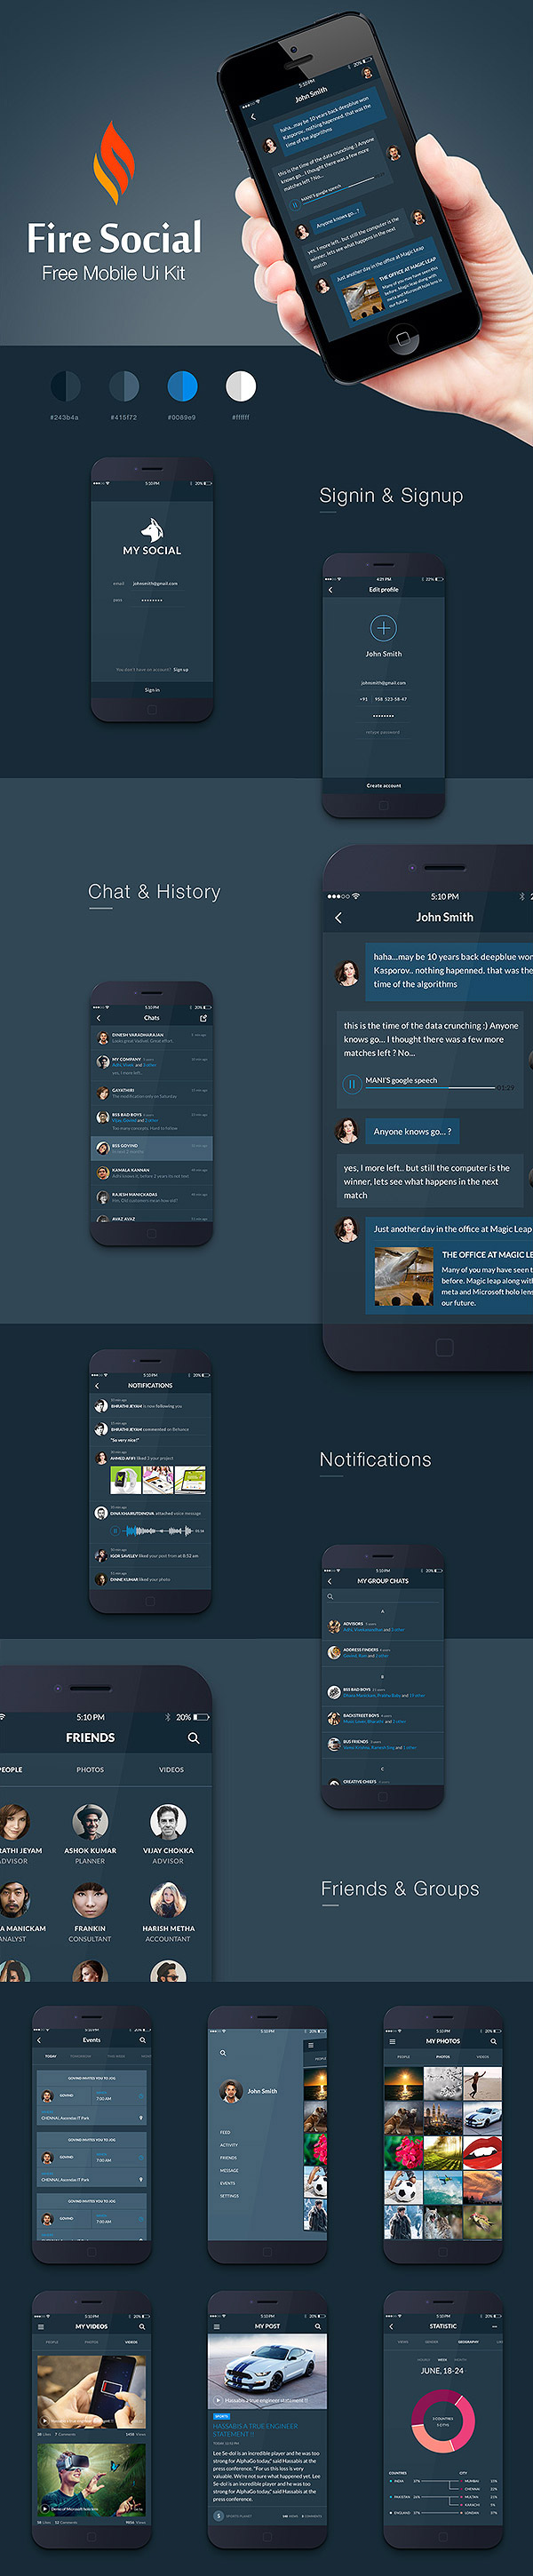 Fire Social App - Free Mobile UI Kit